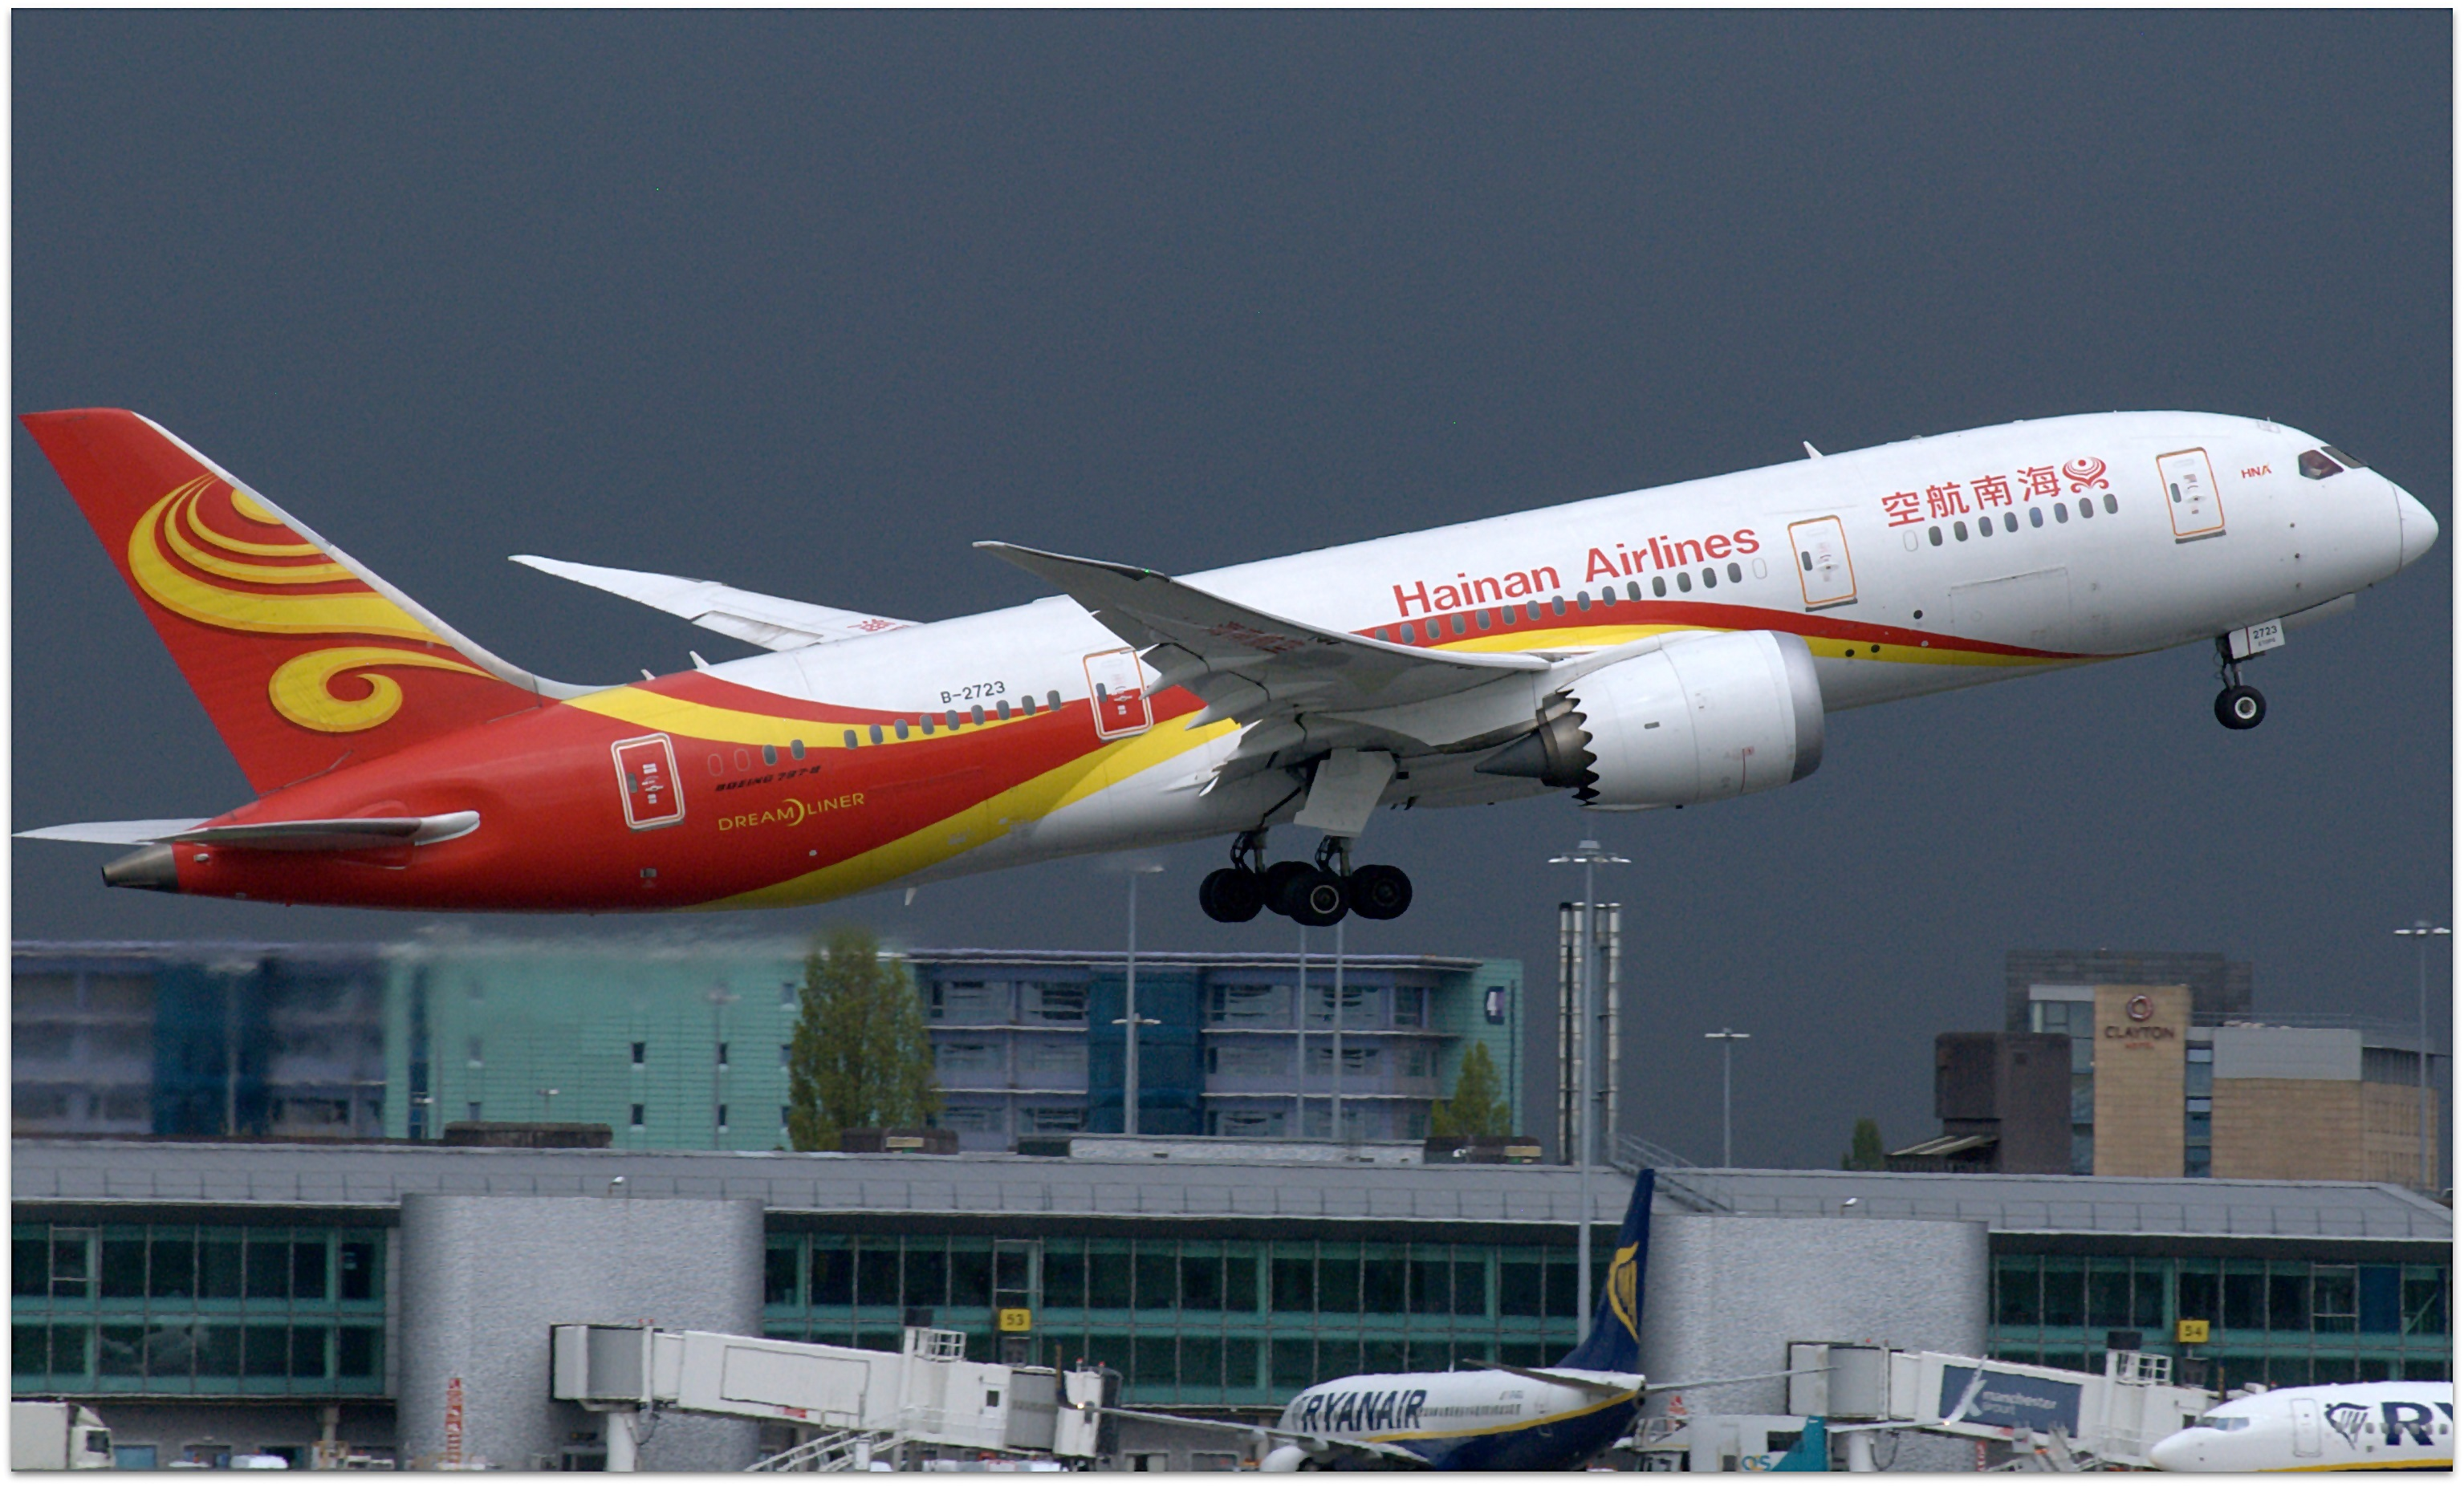 File:Hainan Airlines Boeing 787-8 (B-2723) taking off from